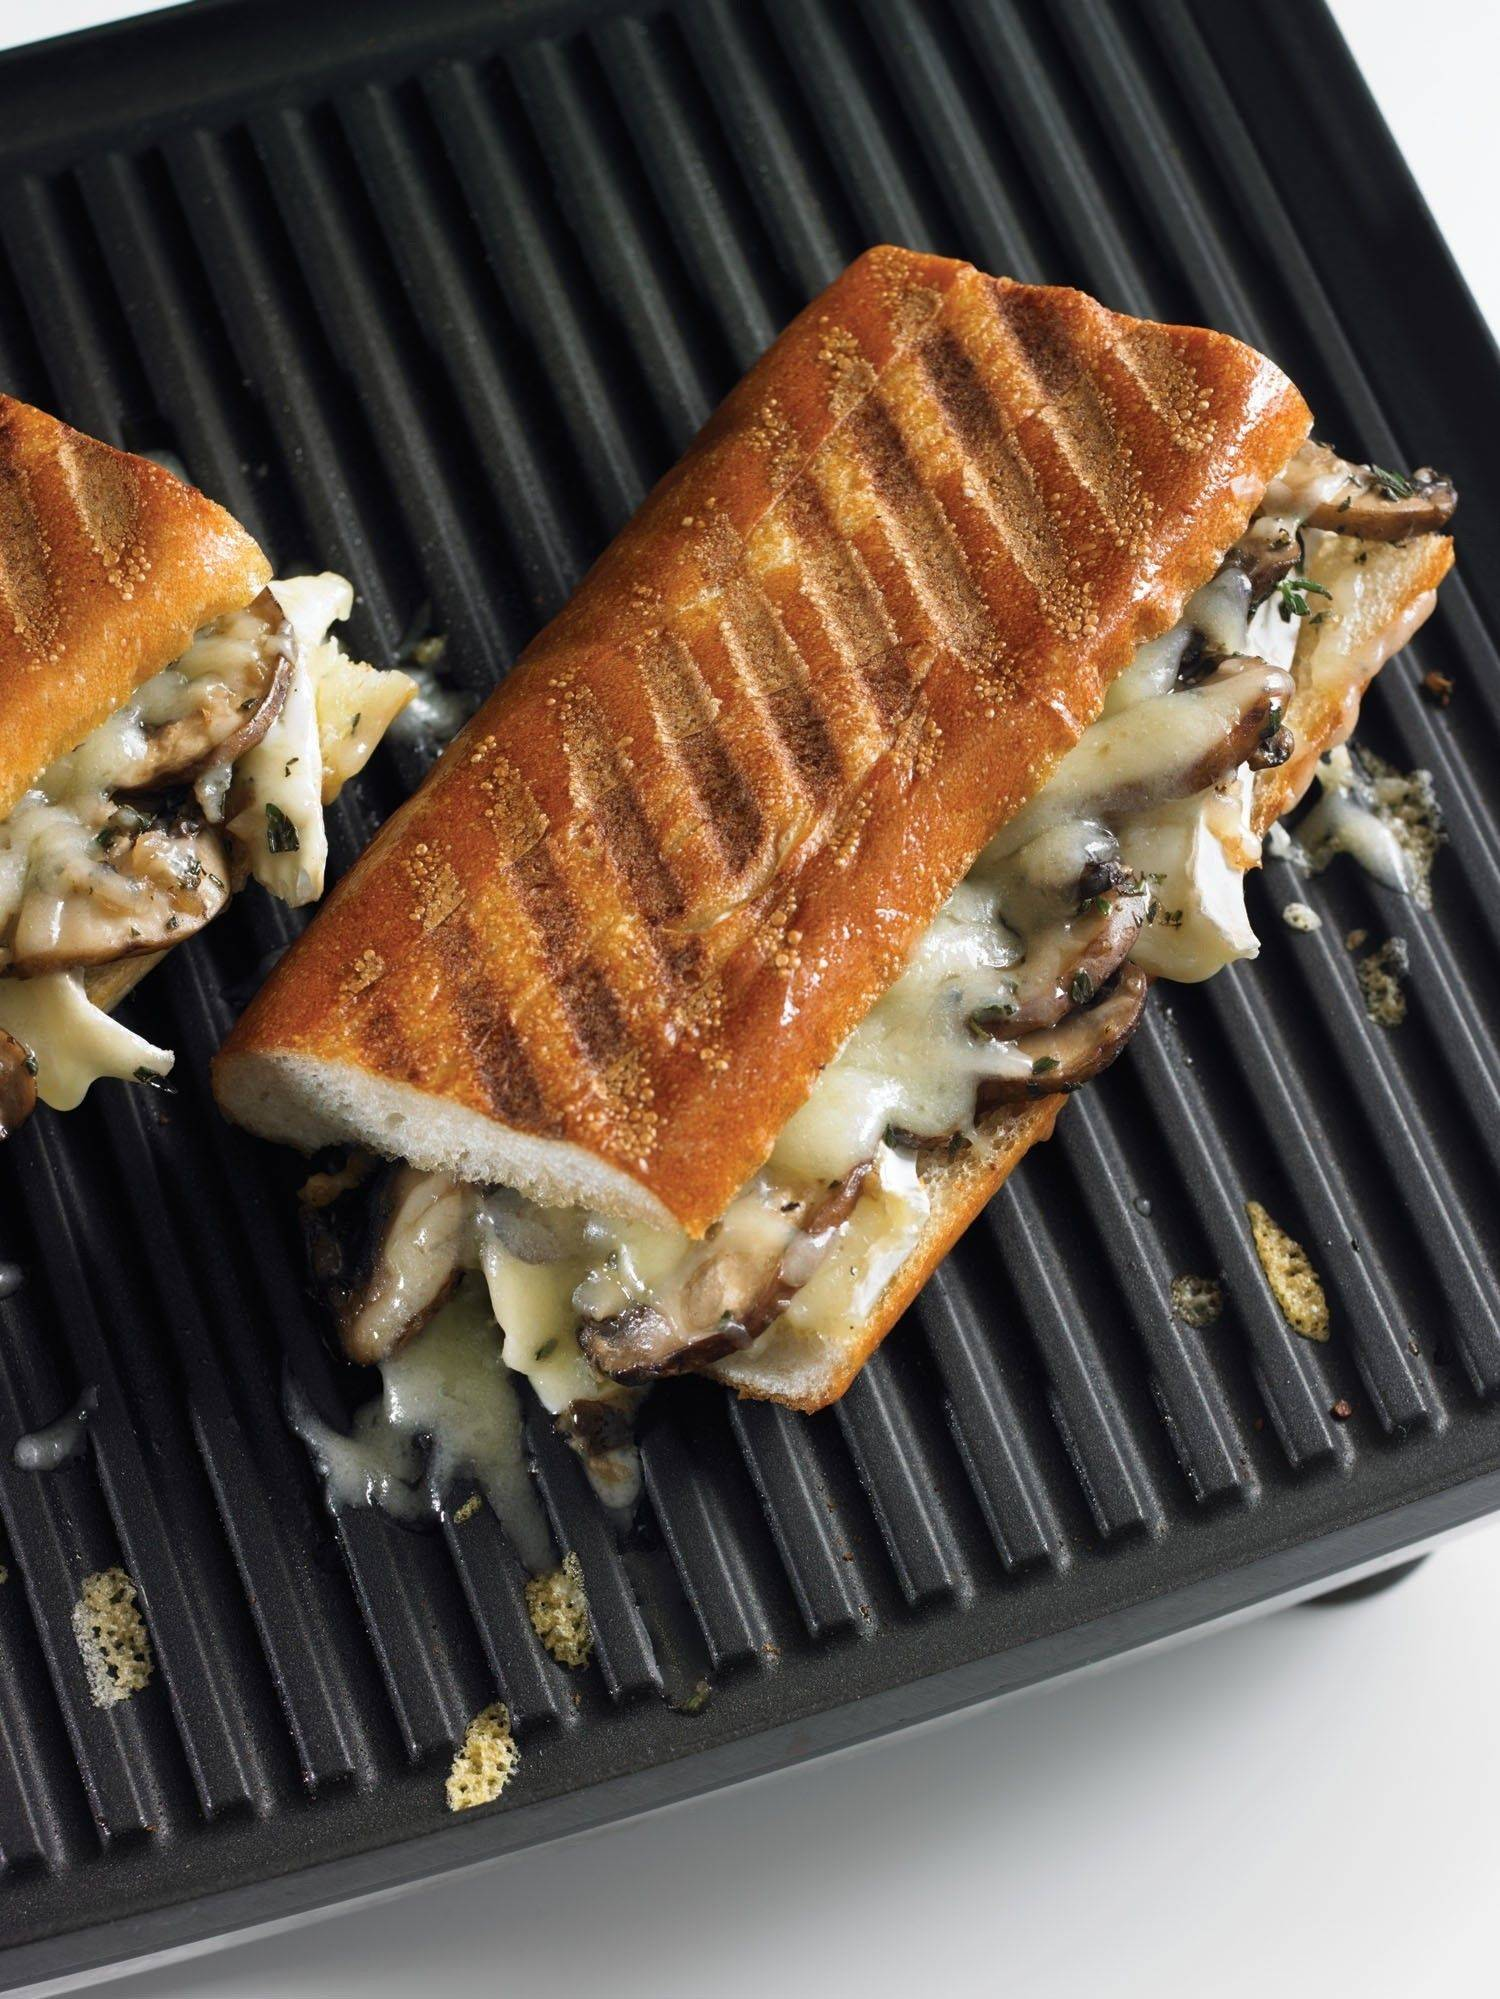 Mushrooms, Camembert and French Comte turn a humble grilled-cheese sandwich into company supper.